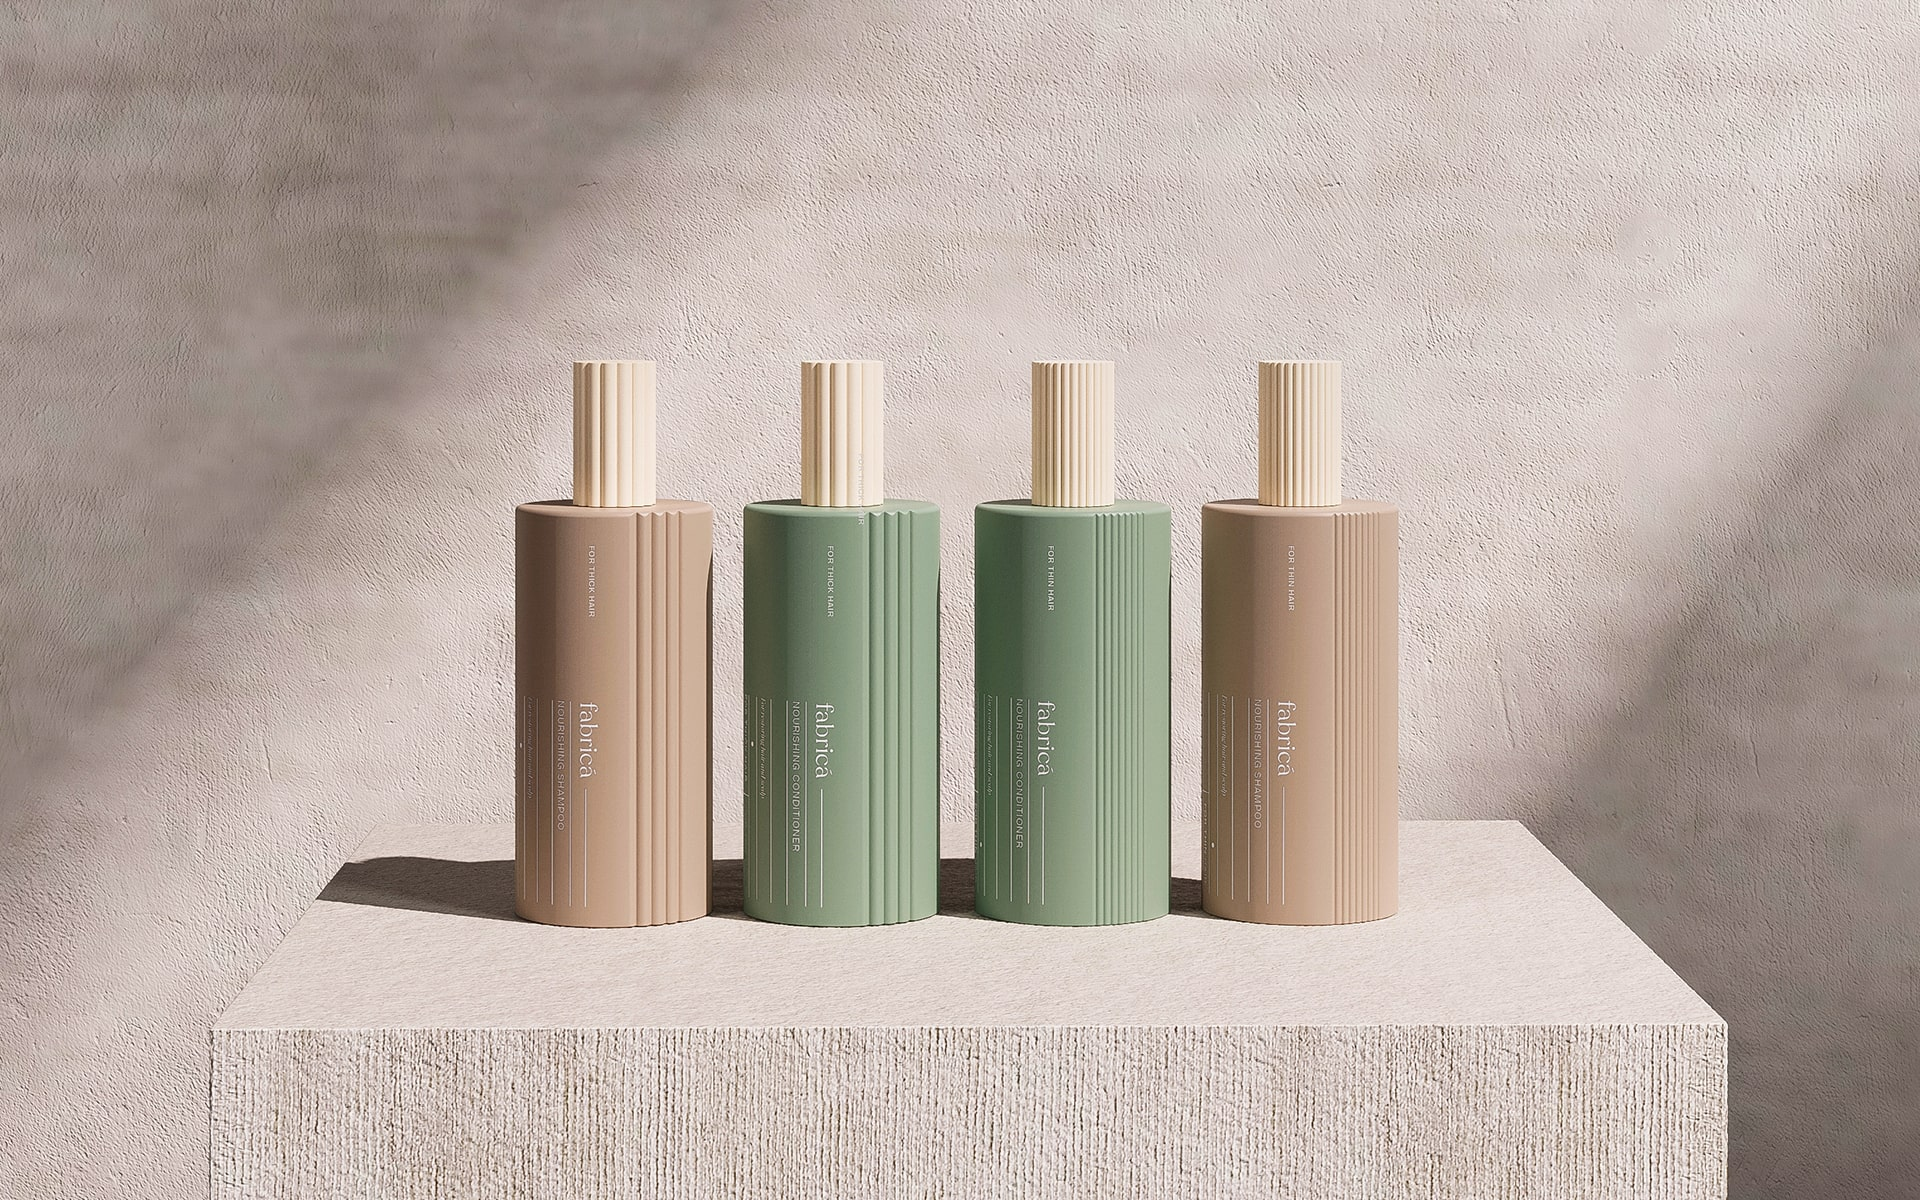 Lyon & Lyon Creative Design Branding and Packaging for Fabricá Unisex Concept